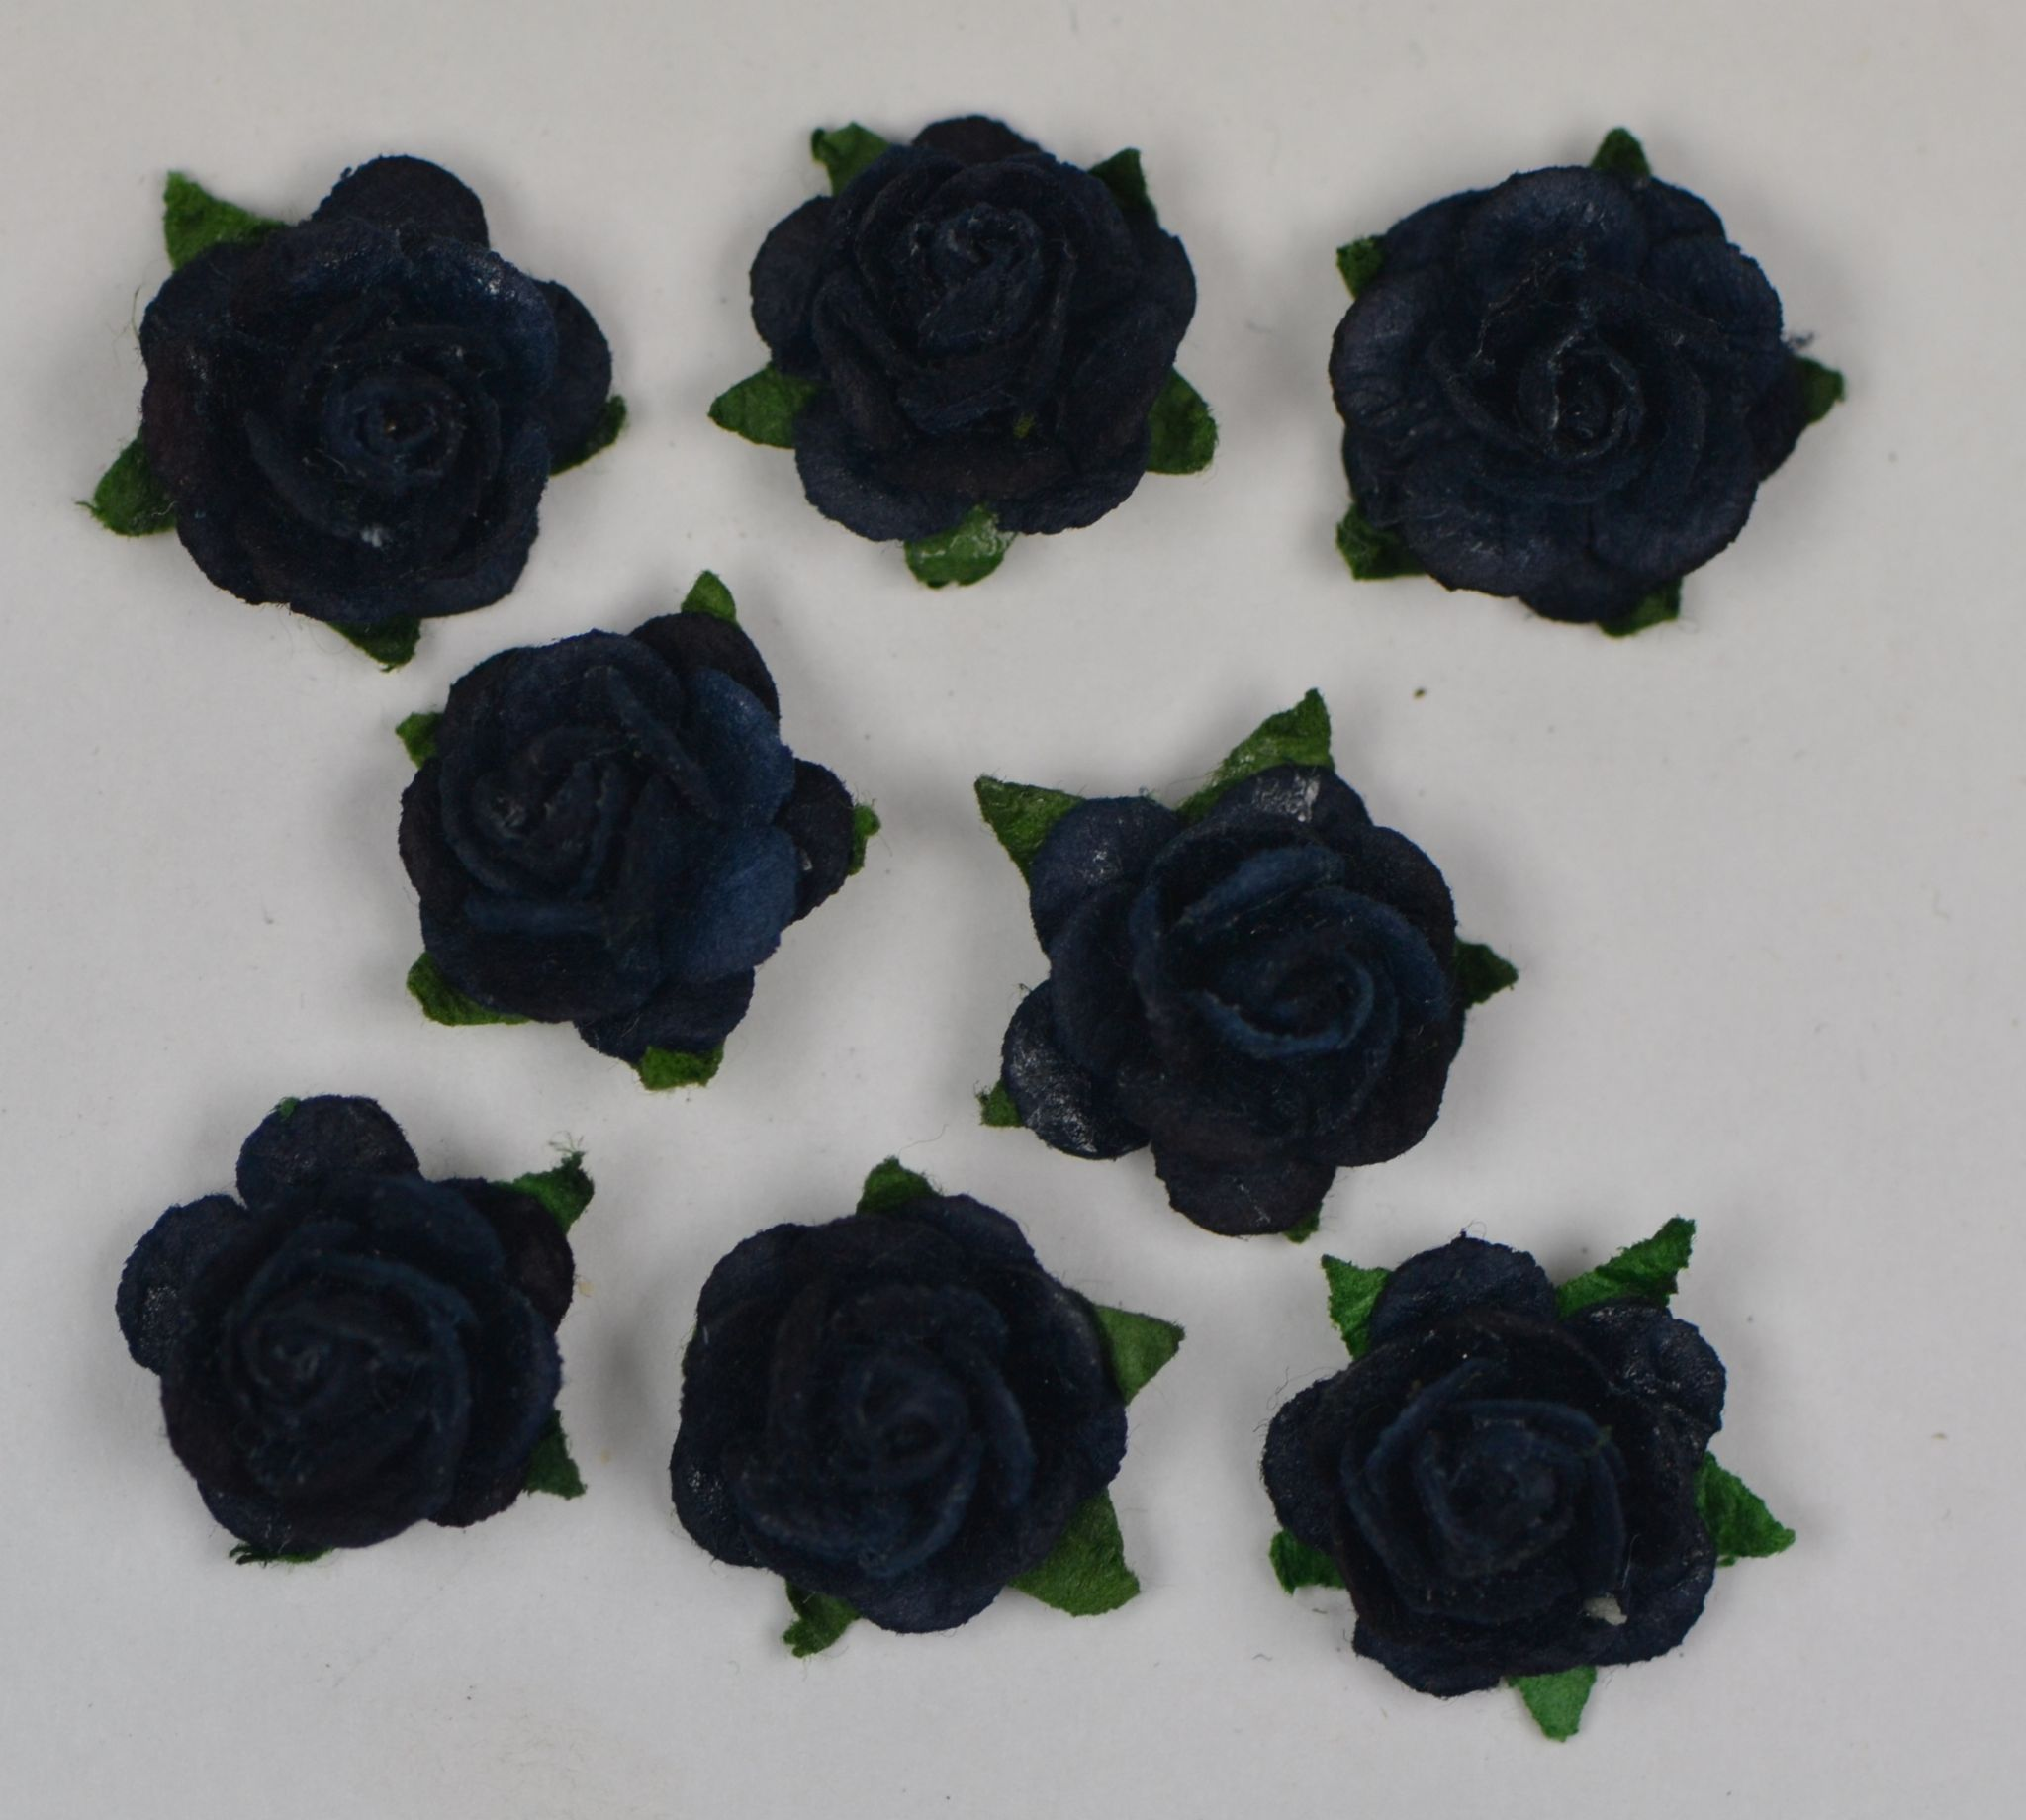 15cm Midnight Blue Black Mulberry Paper Roses Only Flower Head